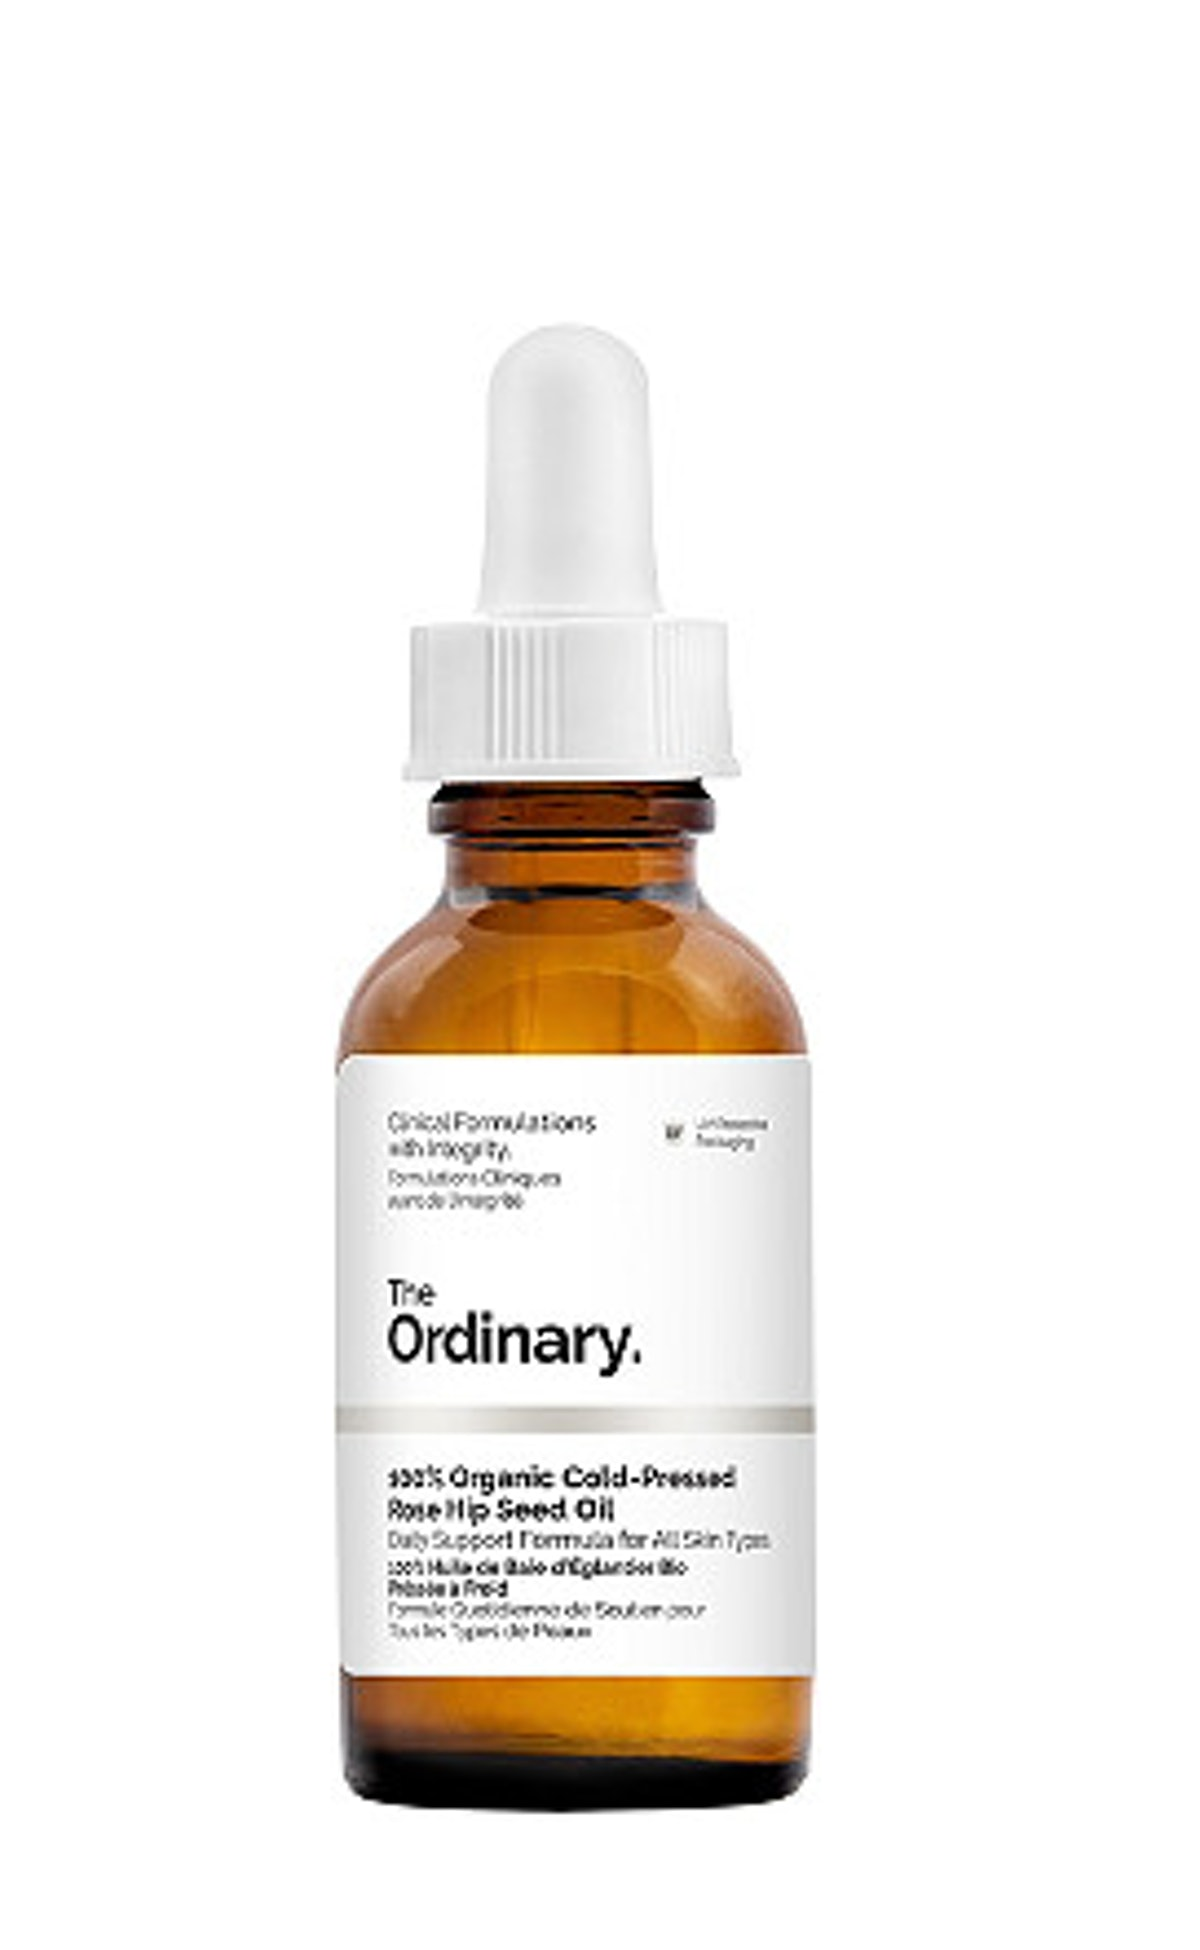 100% Organic Cold Pressed Rose Hip Seed Oil